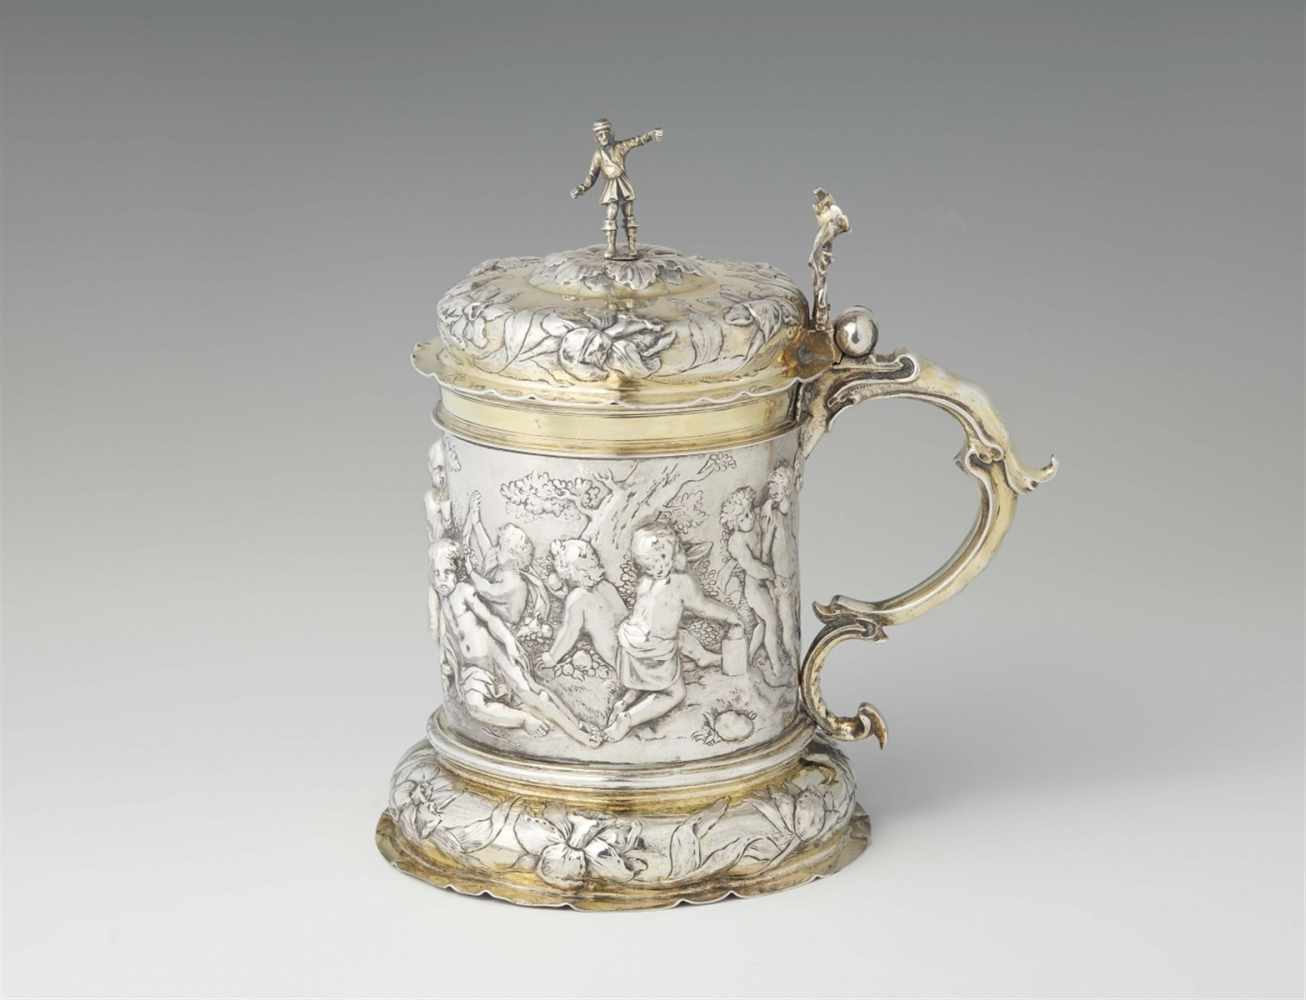 Lot 305 - An important Hamburg parcel gilt silver tankardCylindrical corpus, the basal rim and domed lid